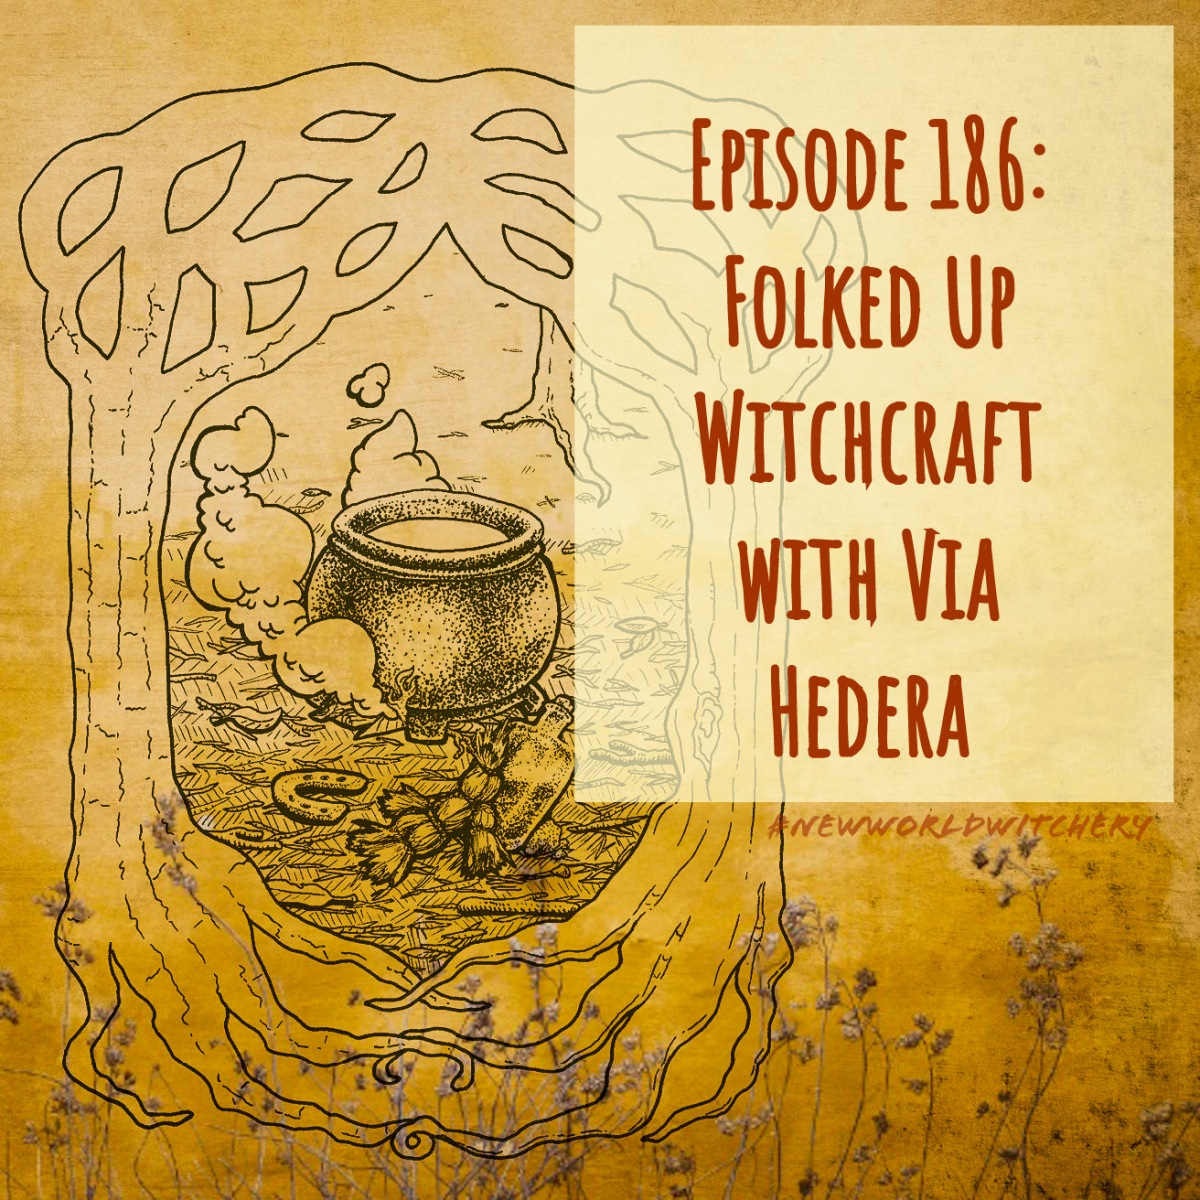 Episode 186 – Folked Up Witchcraft with ViaHedera